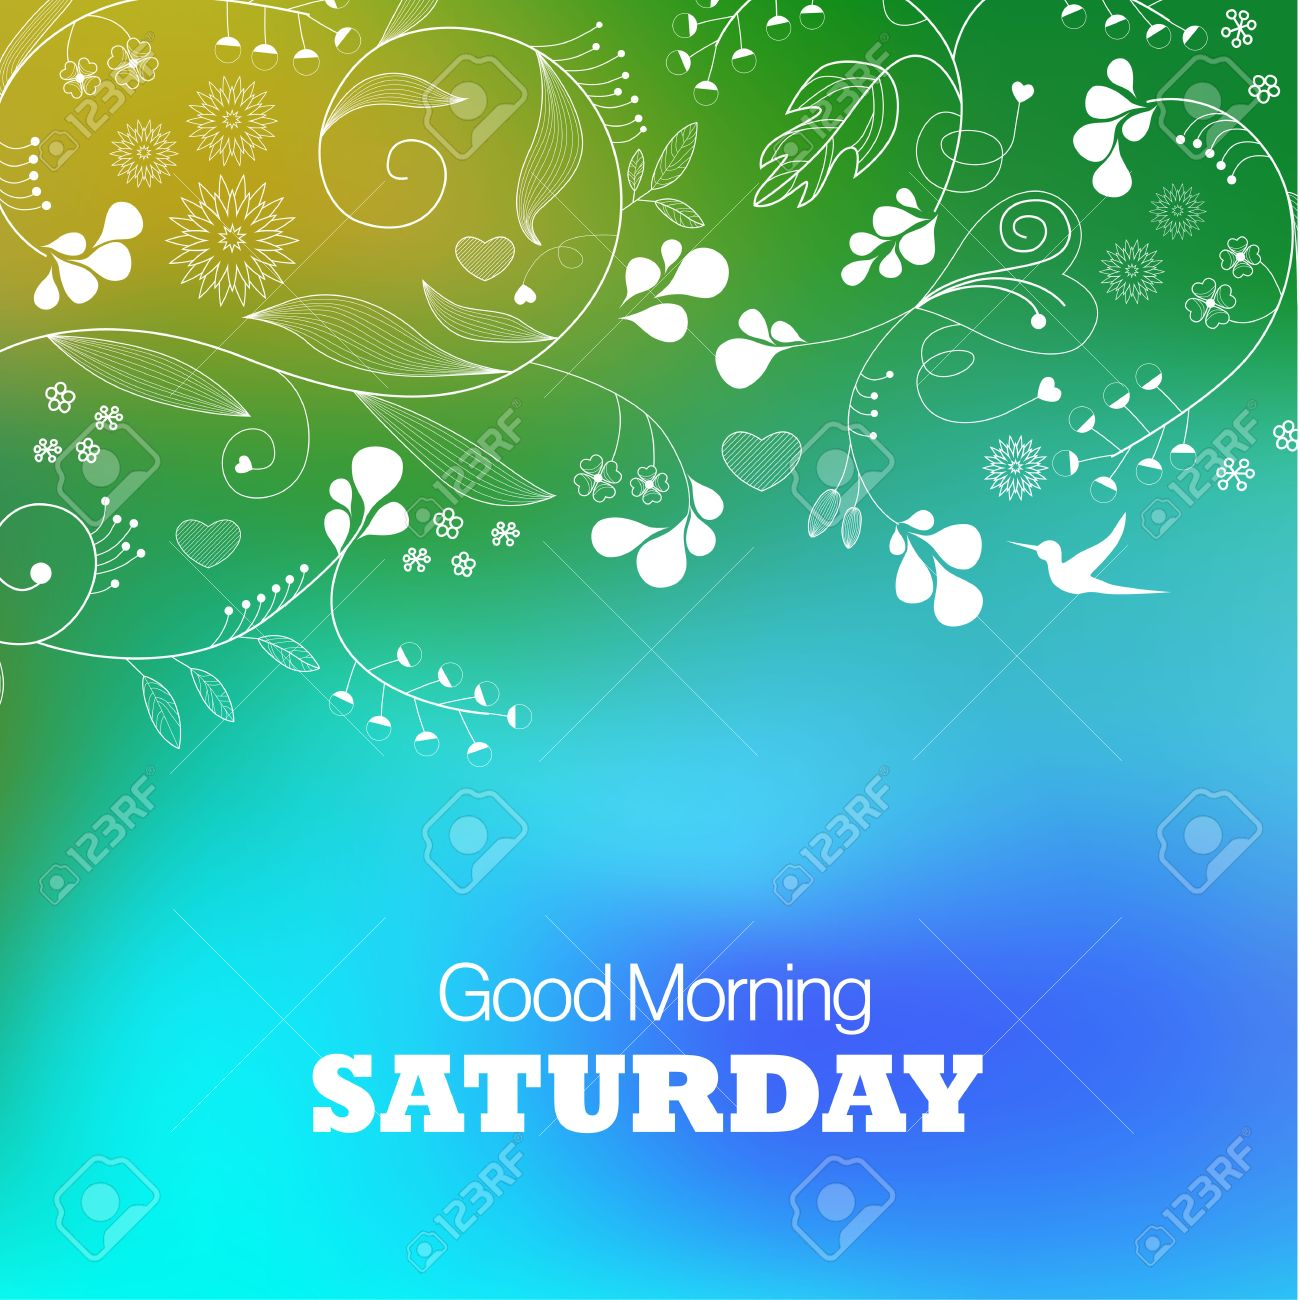 Days Of The Week Saturday Text Good Morning Saturday On A Green